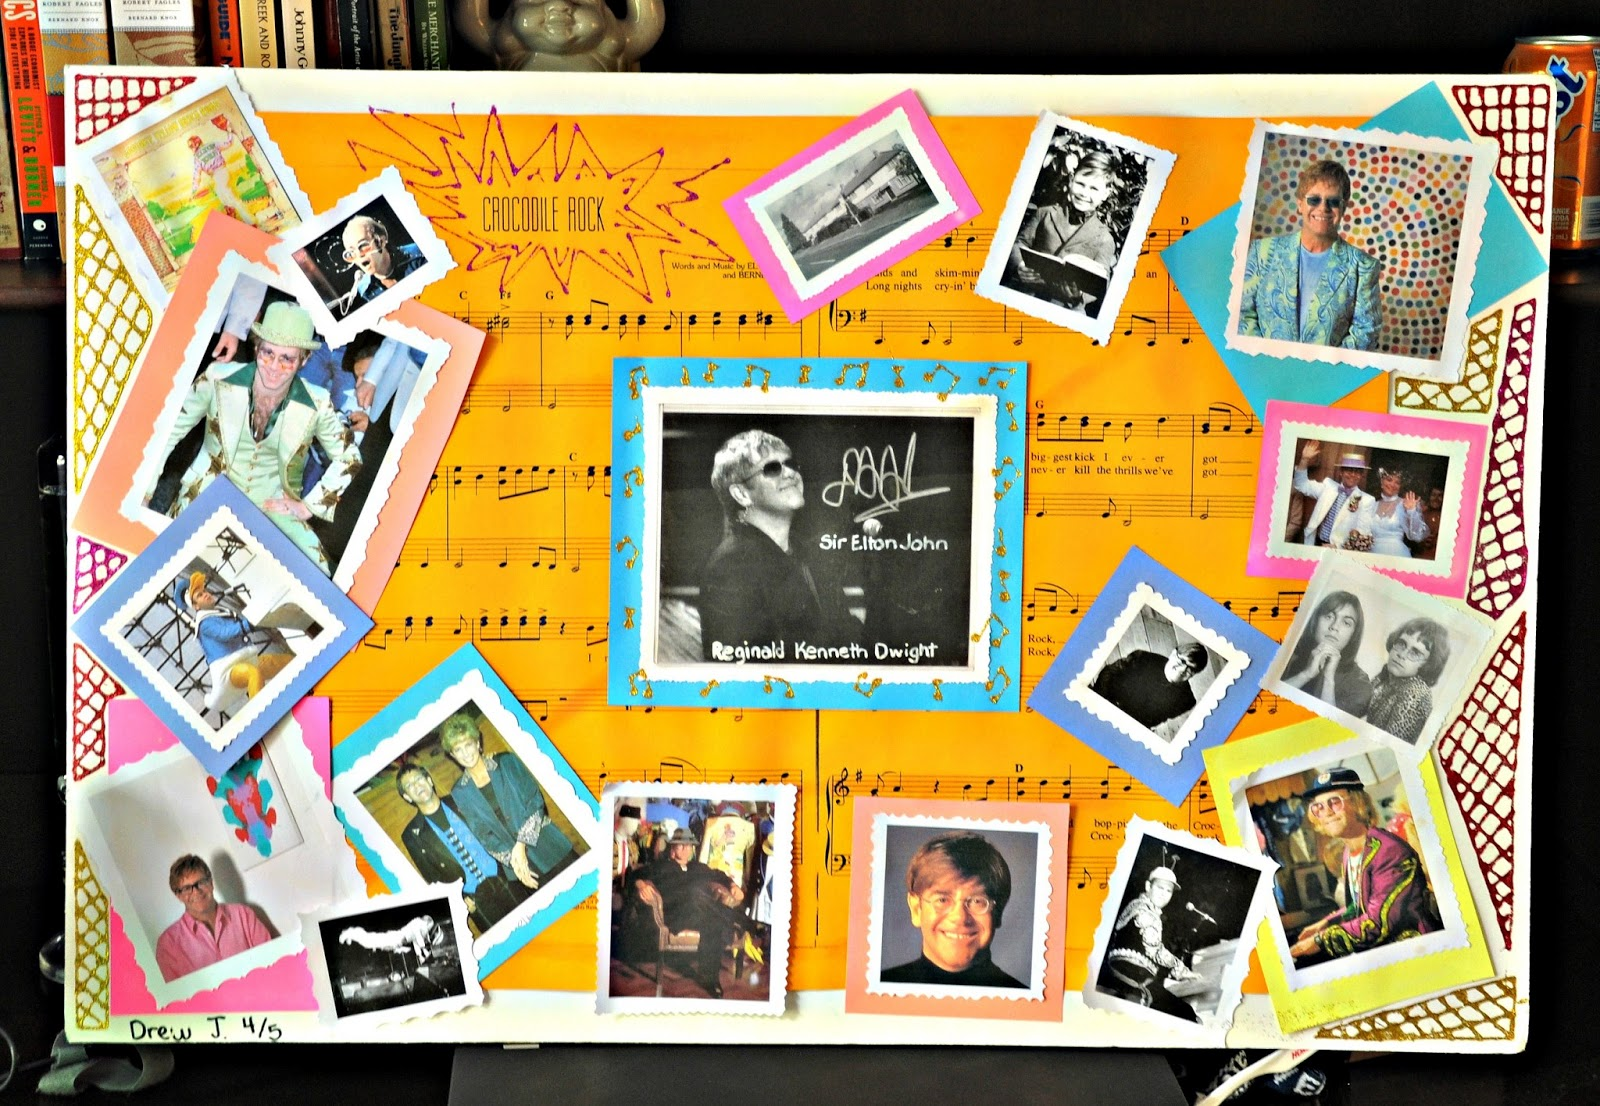 Creative poster board ideas for school project